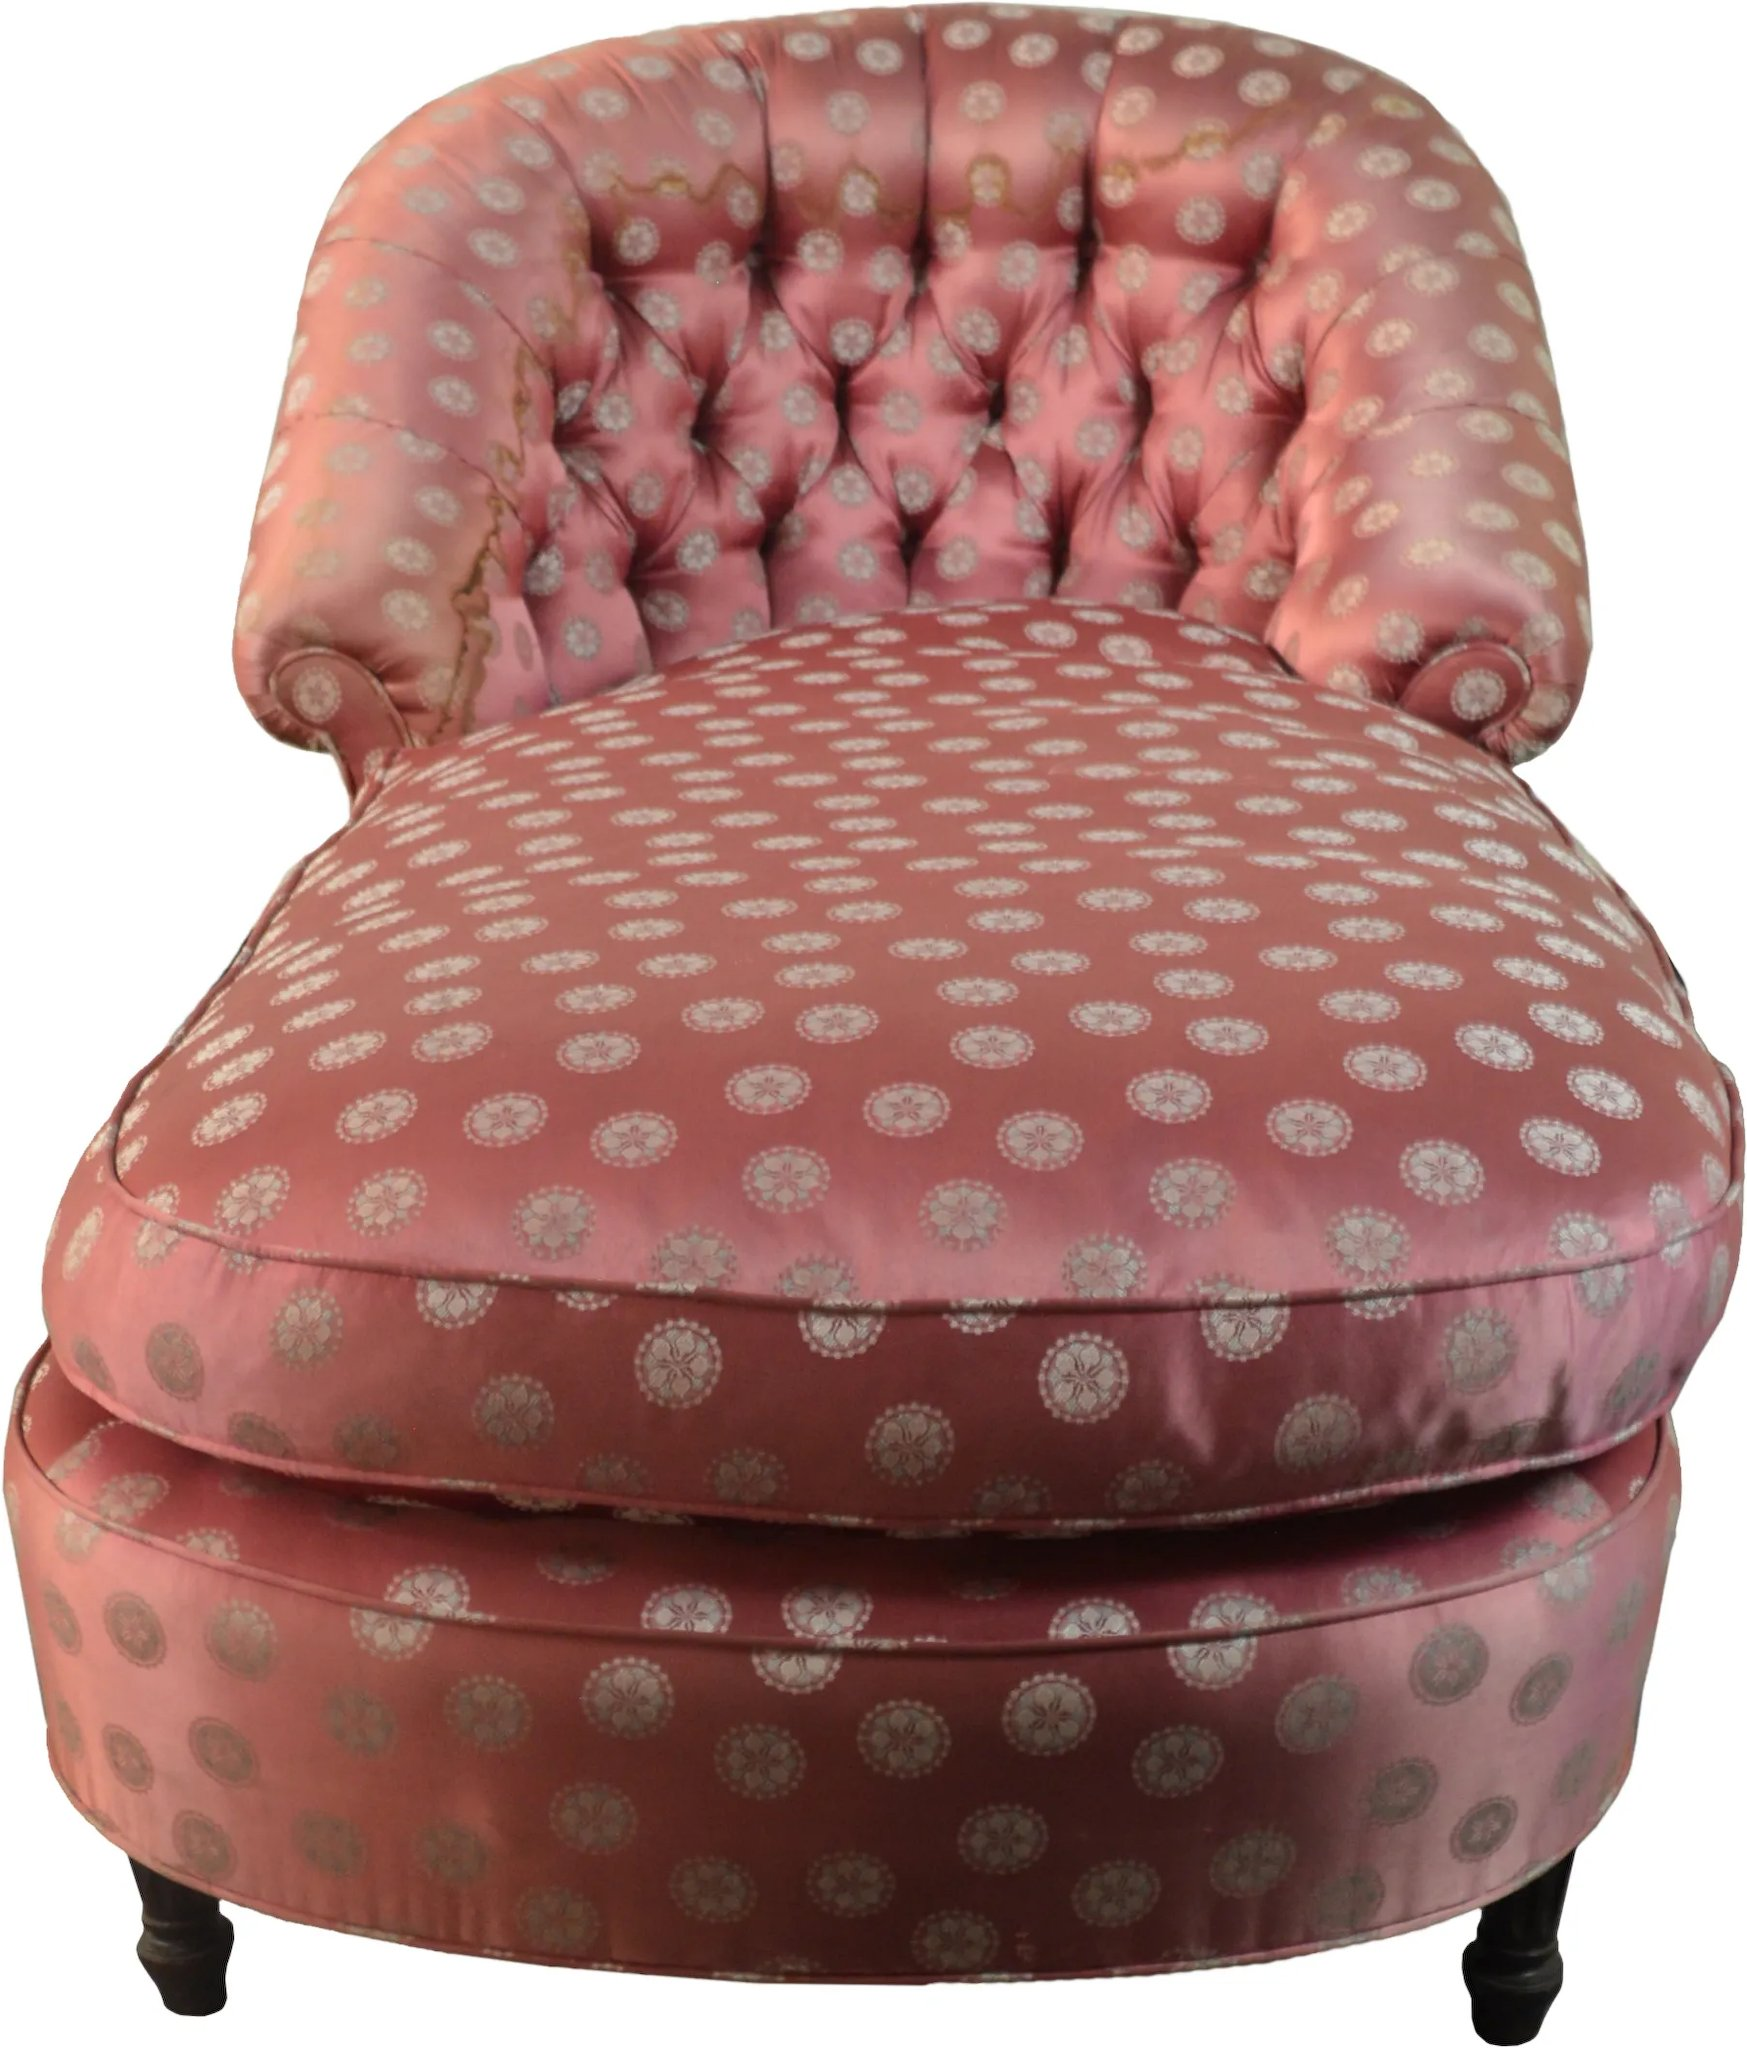 Victorian Chaise Lounge Maine Antique Furniture Ruby Lane